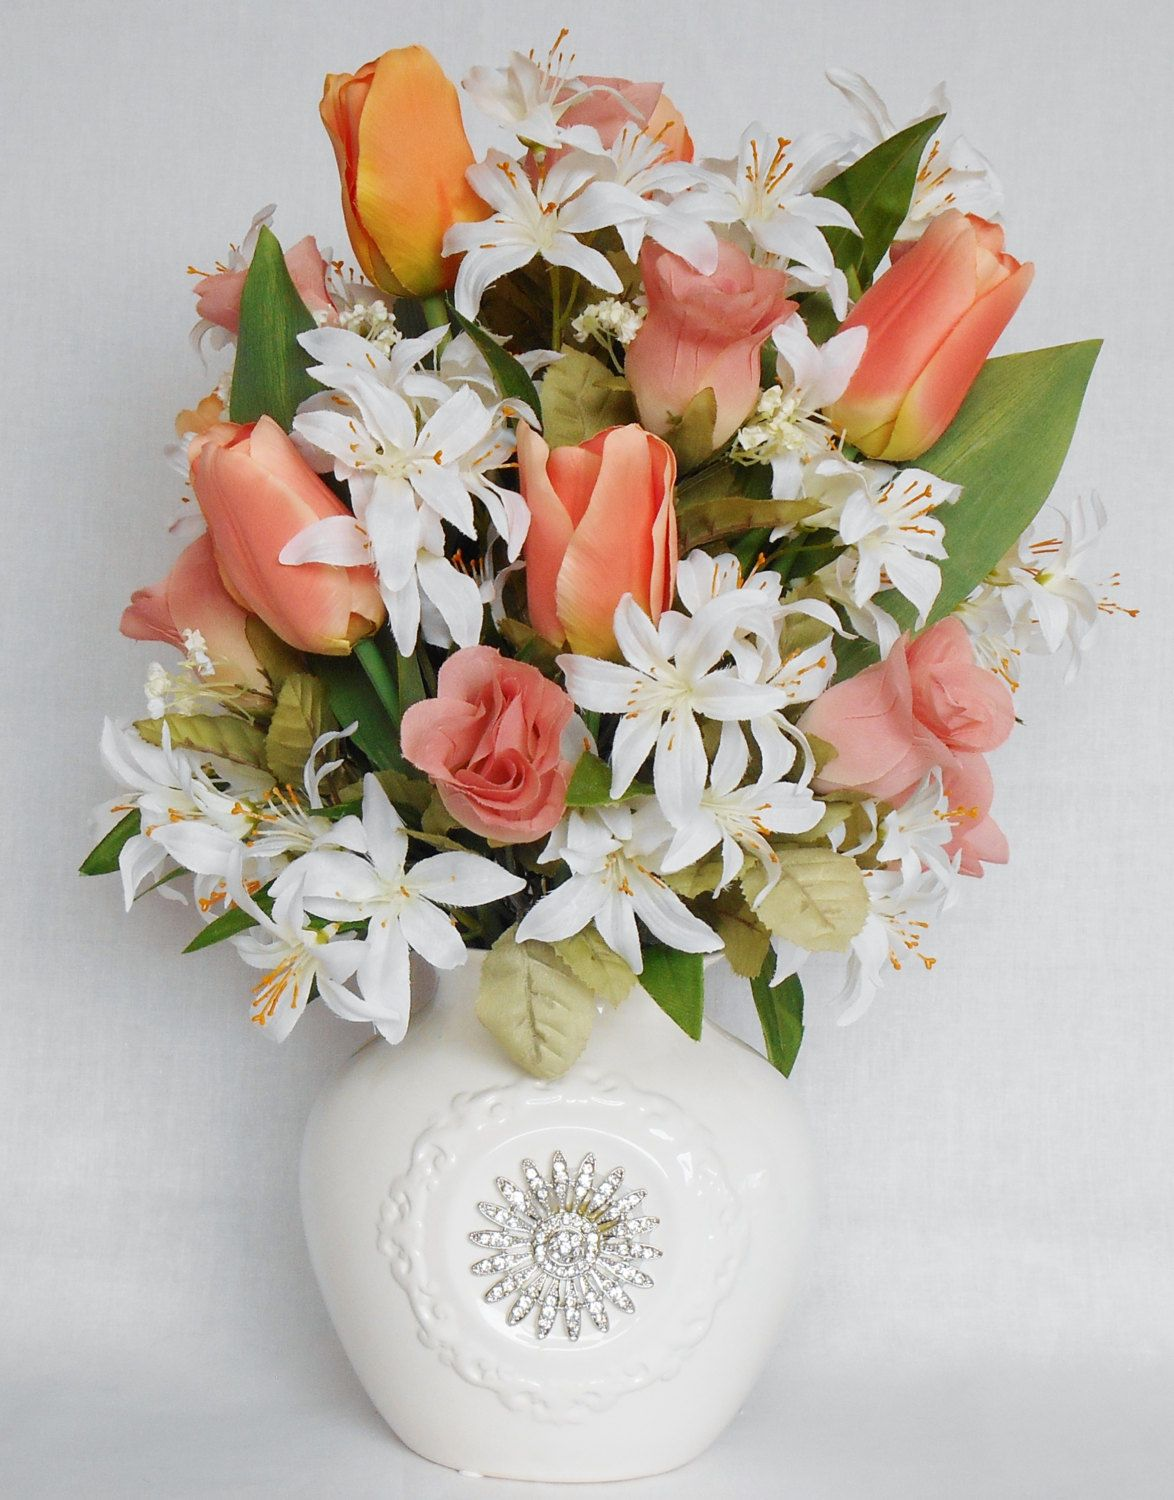 silk flower arrangement, coral tulips, coral rosebuds, white tiger